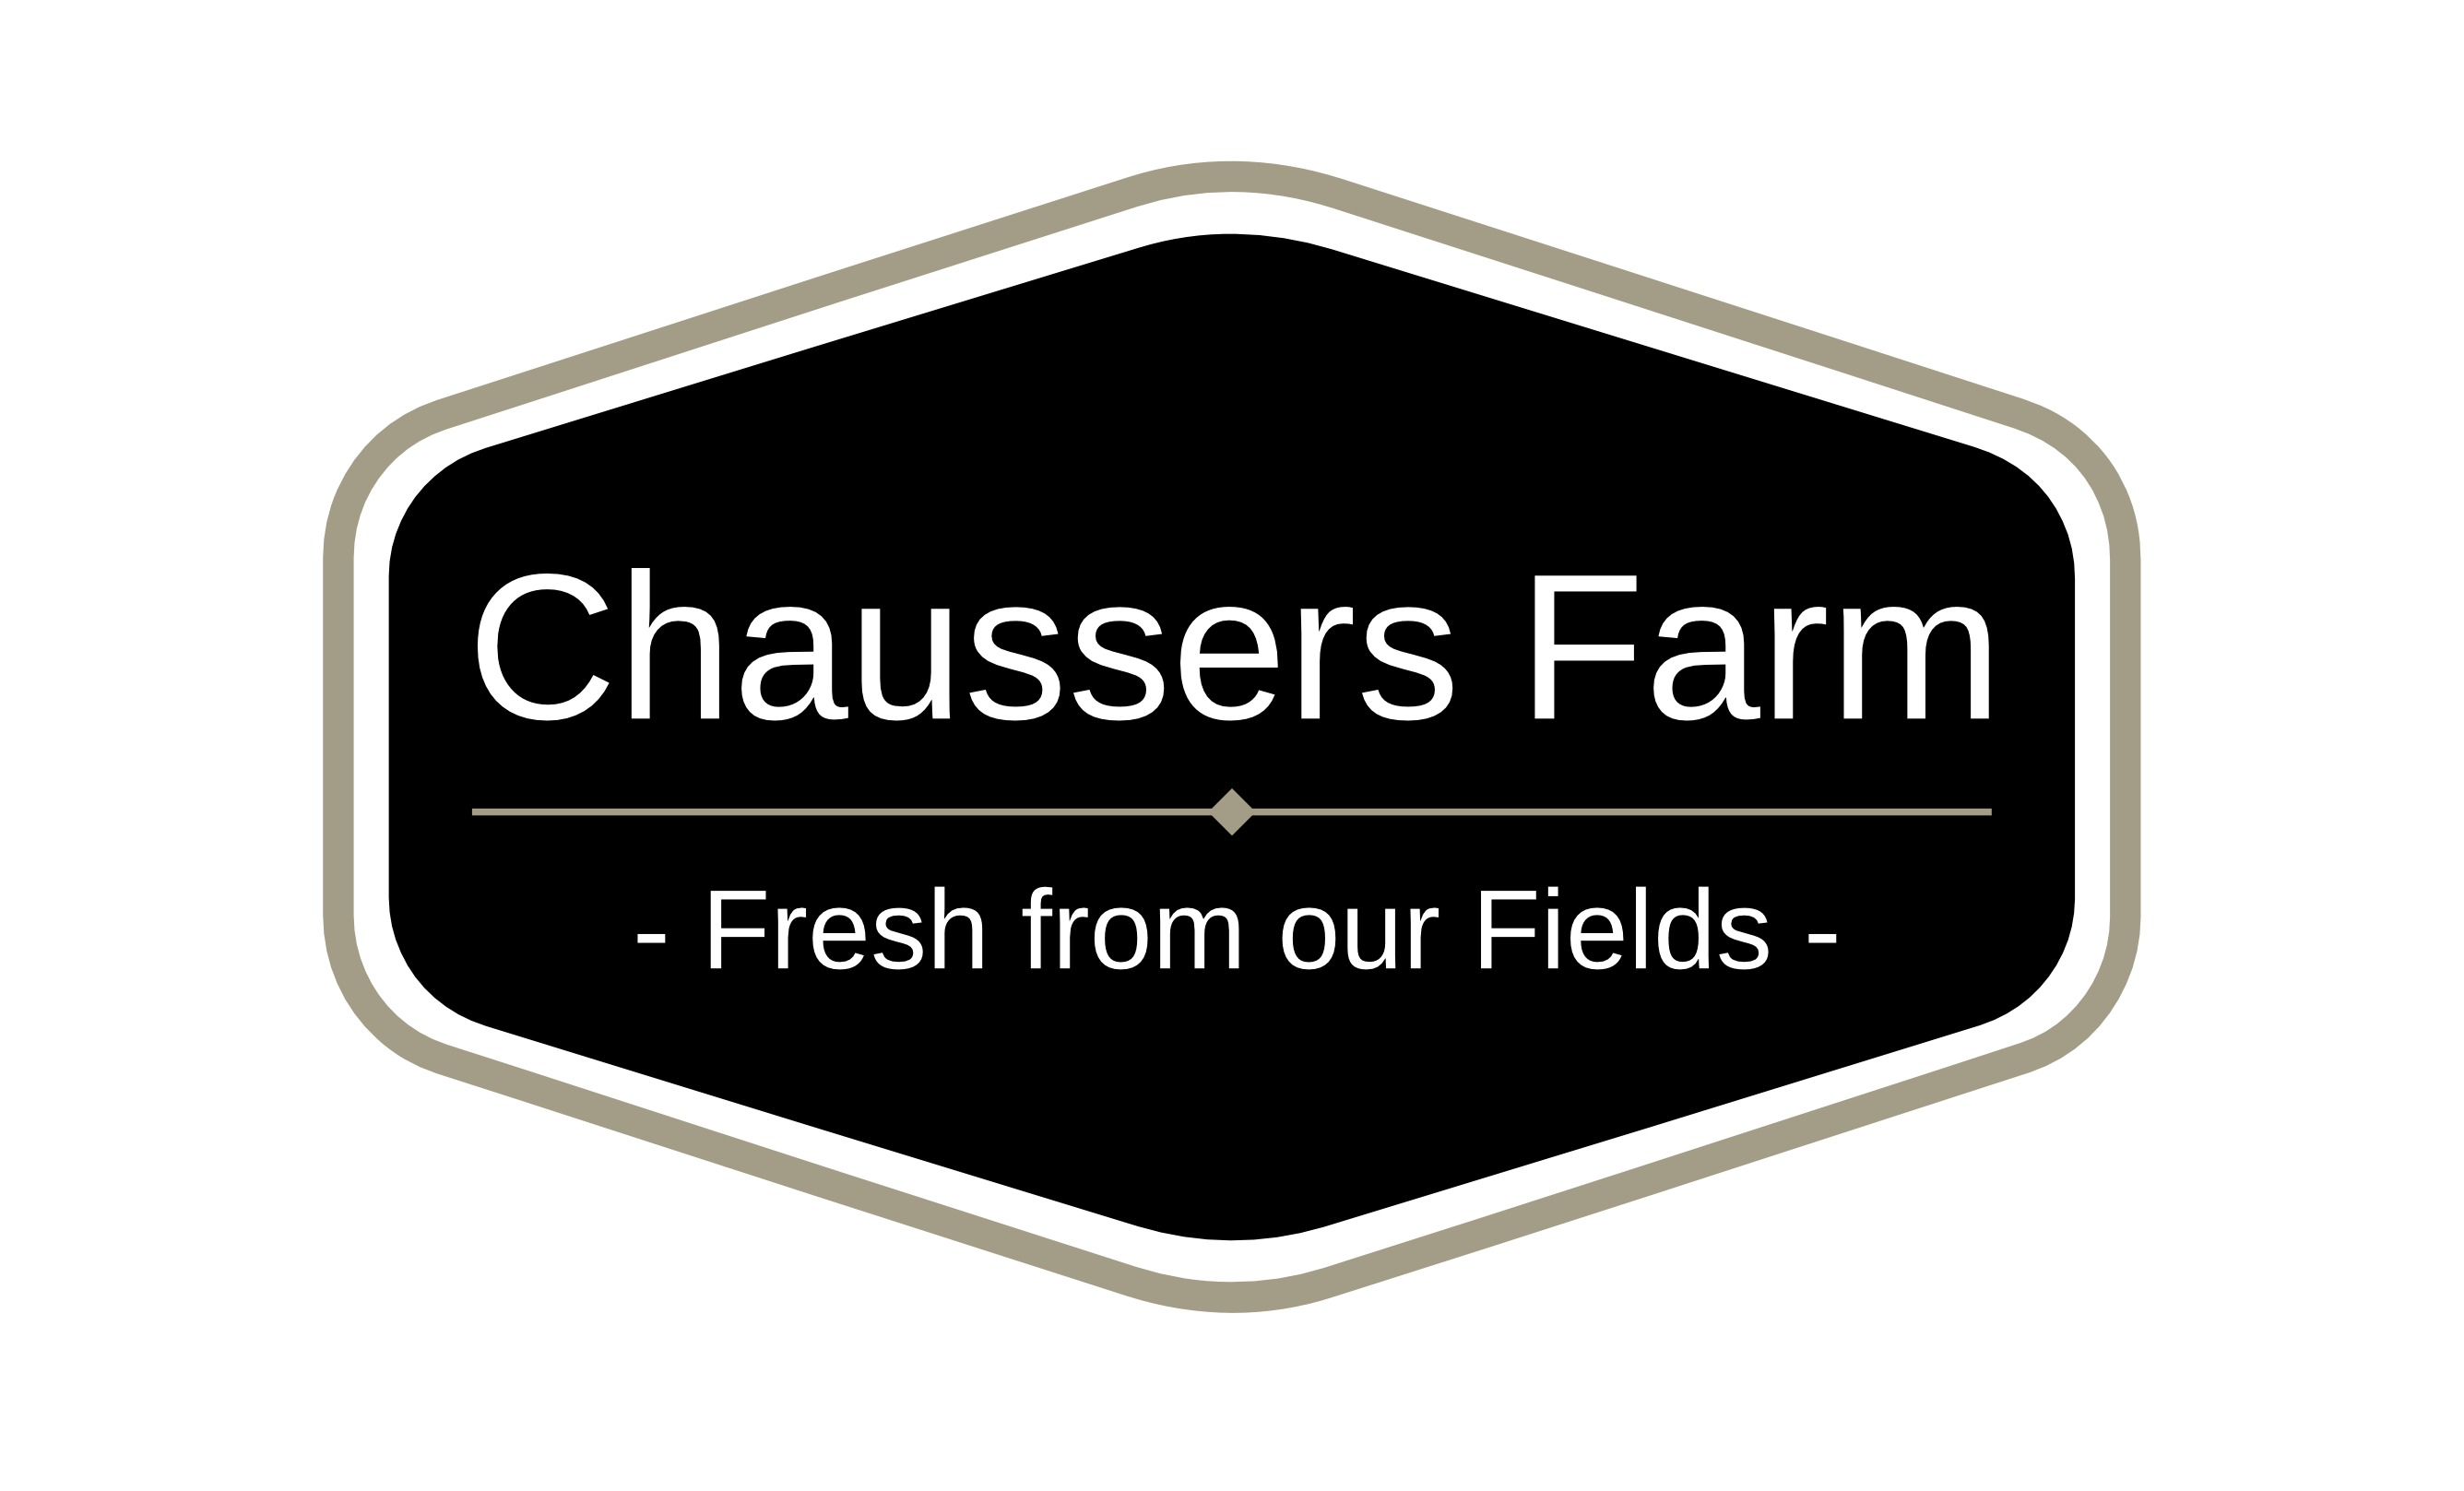 Welcome to Chaussers Farm